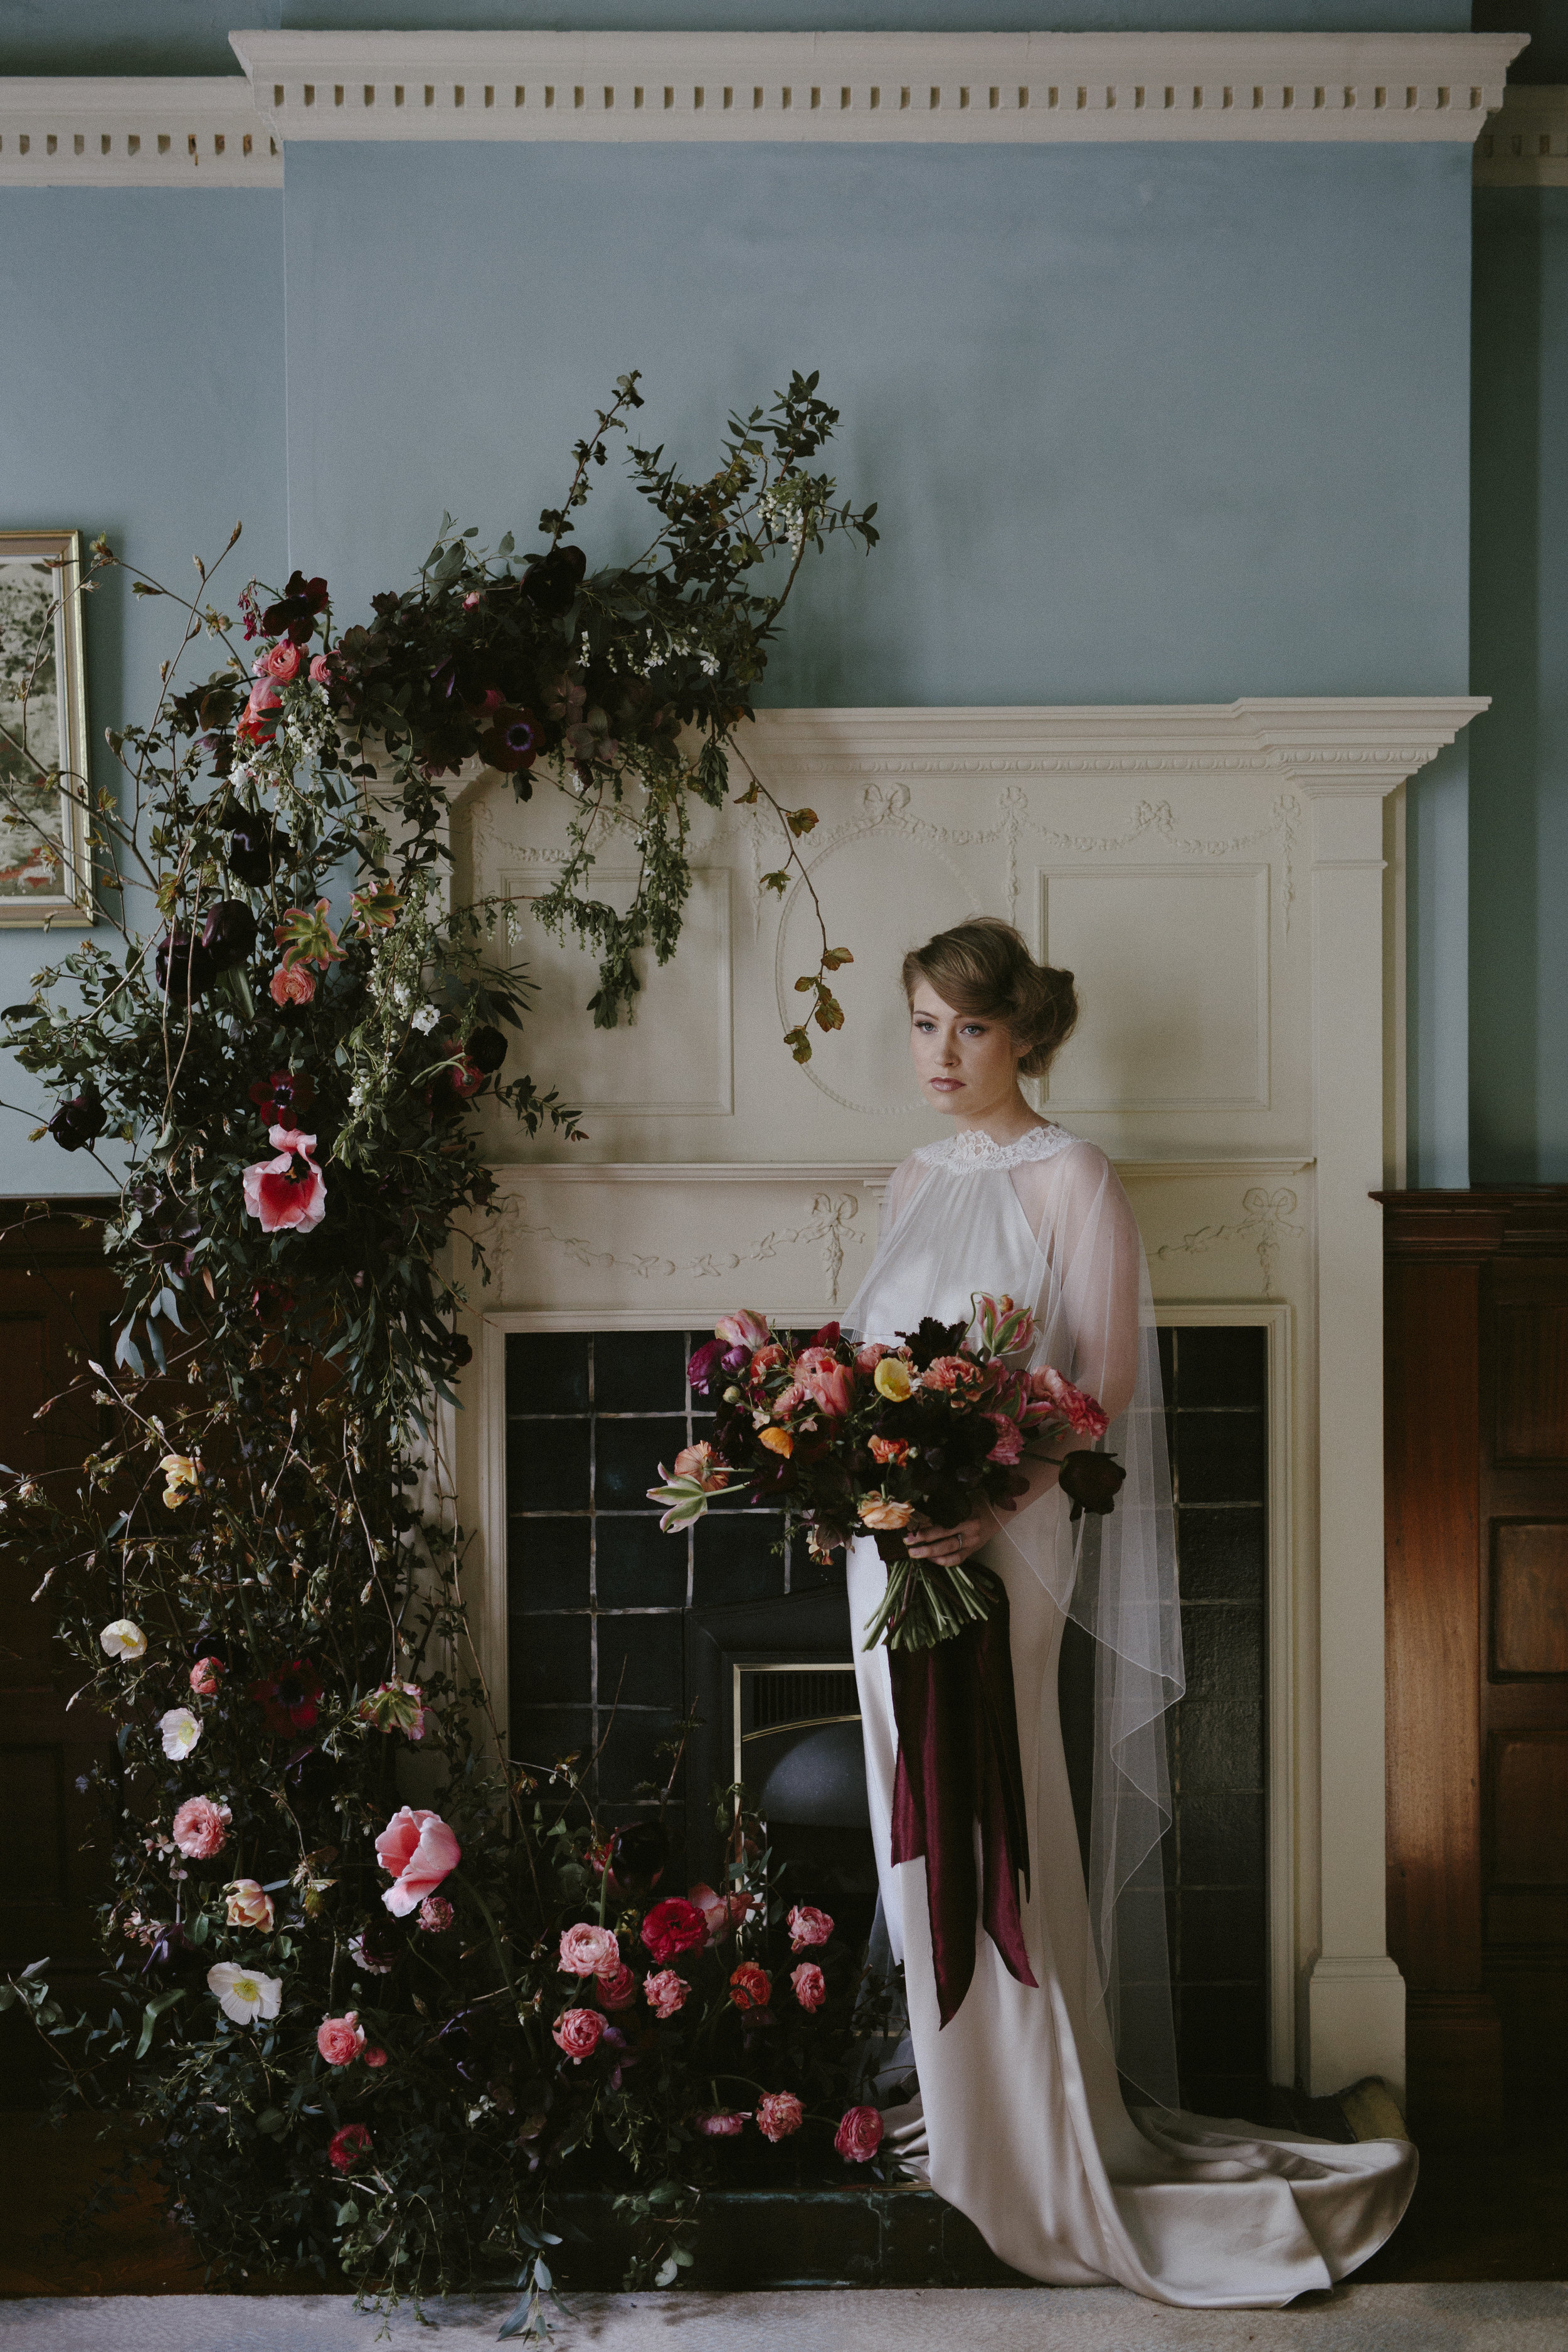 Agnes-and-bee-Kate-Beaumont-wedding-dresses-Ruth-Atkinson-14.jpg